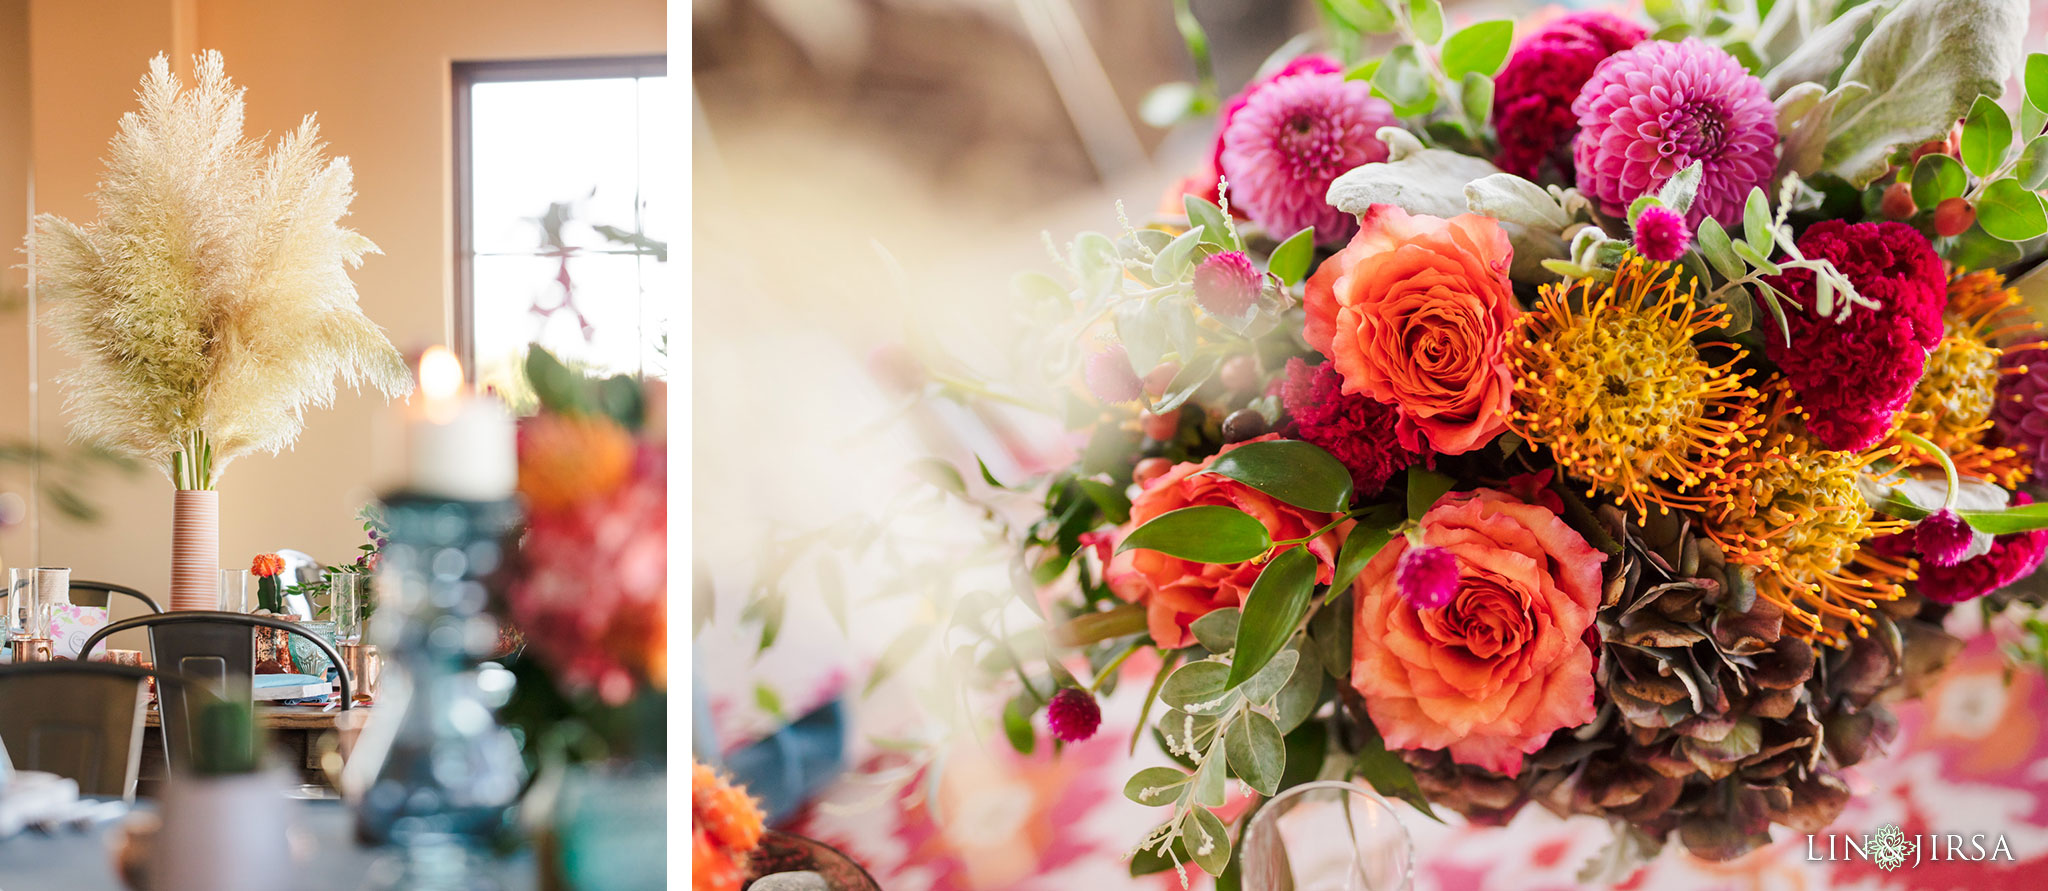 25 aliso viejo orange county styled wedding photography